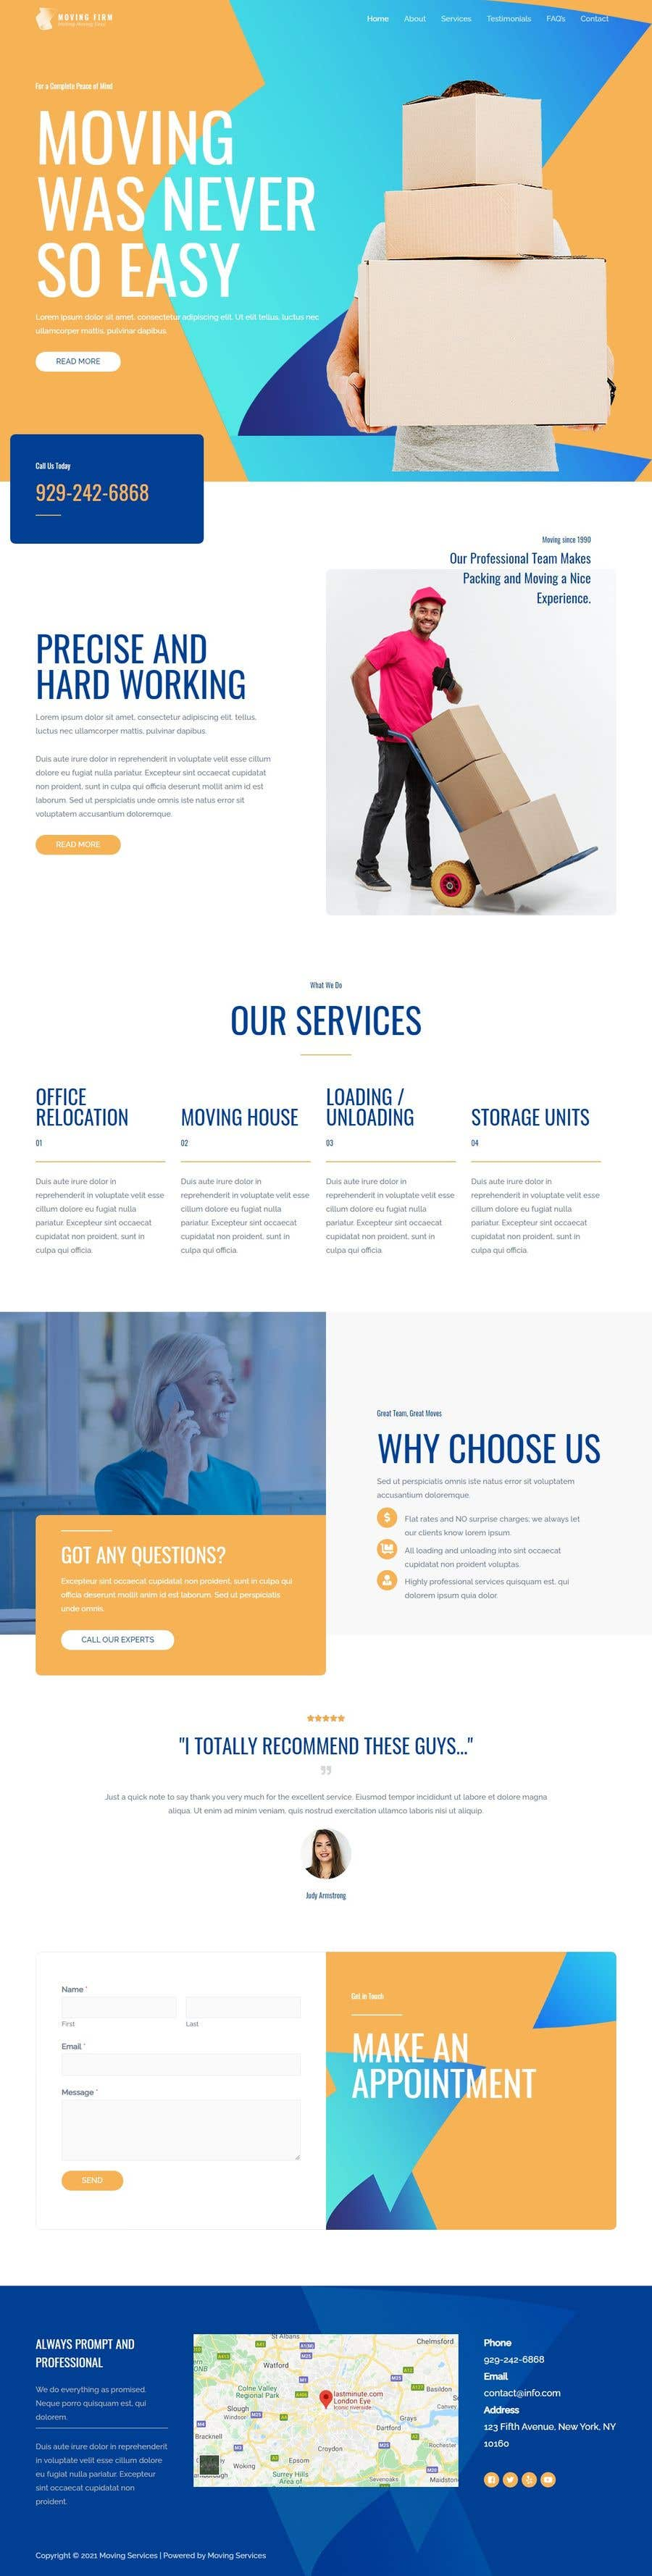 Bài tham dự cuộc thi #                                        29                                      cho                                         I need a Landing Page Website for Small Business Stores